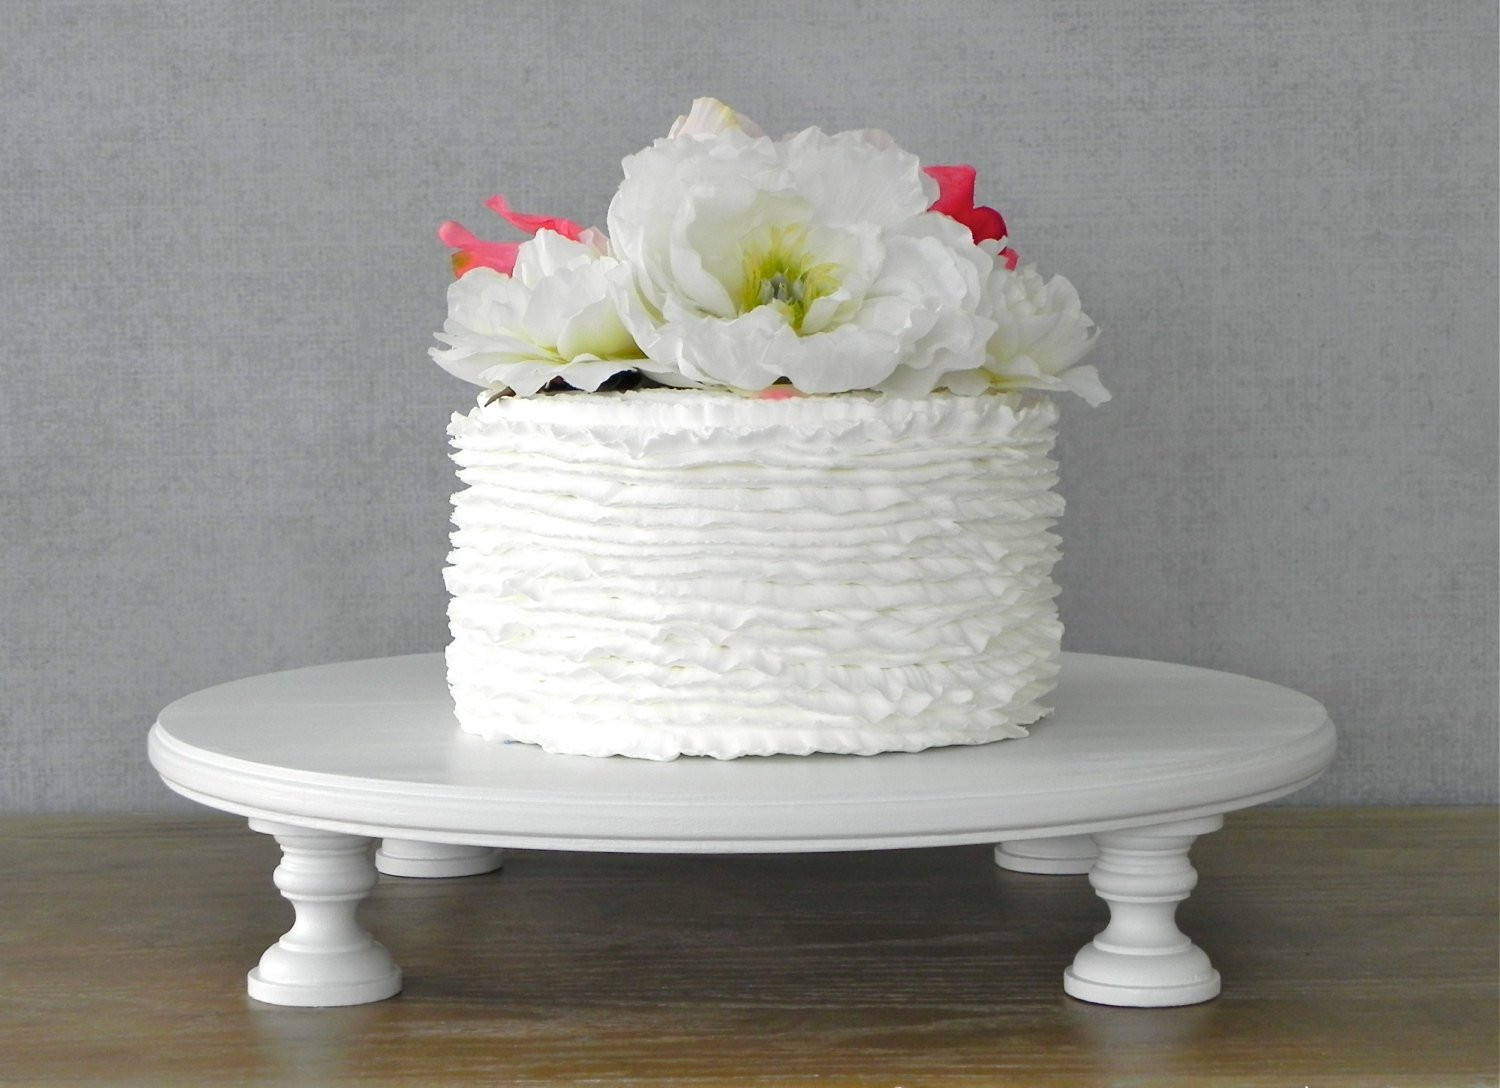 Cake Stands For Wedding Cakes  Cake Stand 14 Wedding Cake Stand Cupcake Round White